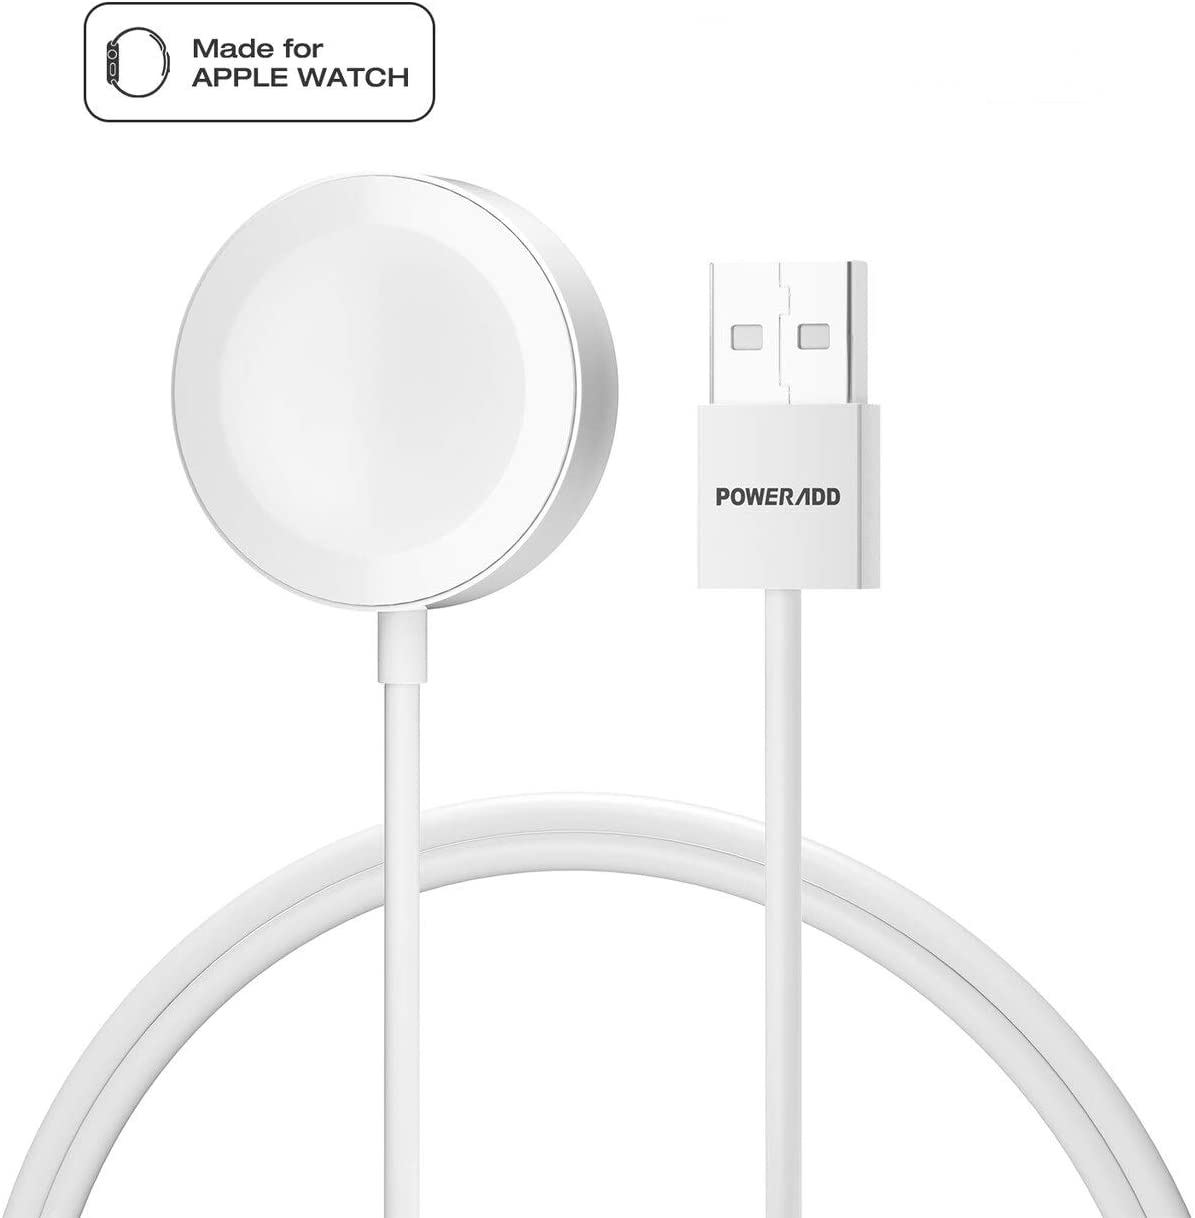 Poweradd [Apple MFi Certified] Apple Watch Charger, iWatch Magnetic Charging Cable 3.Feet/1Meter Compatible with iWatch 38mm & 42mm, Apple Watch Series 4/3/ 2/1